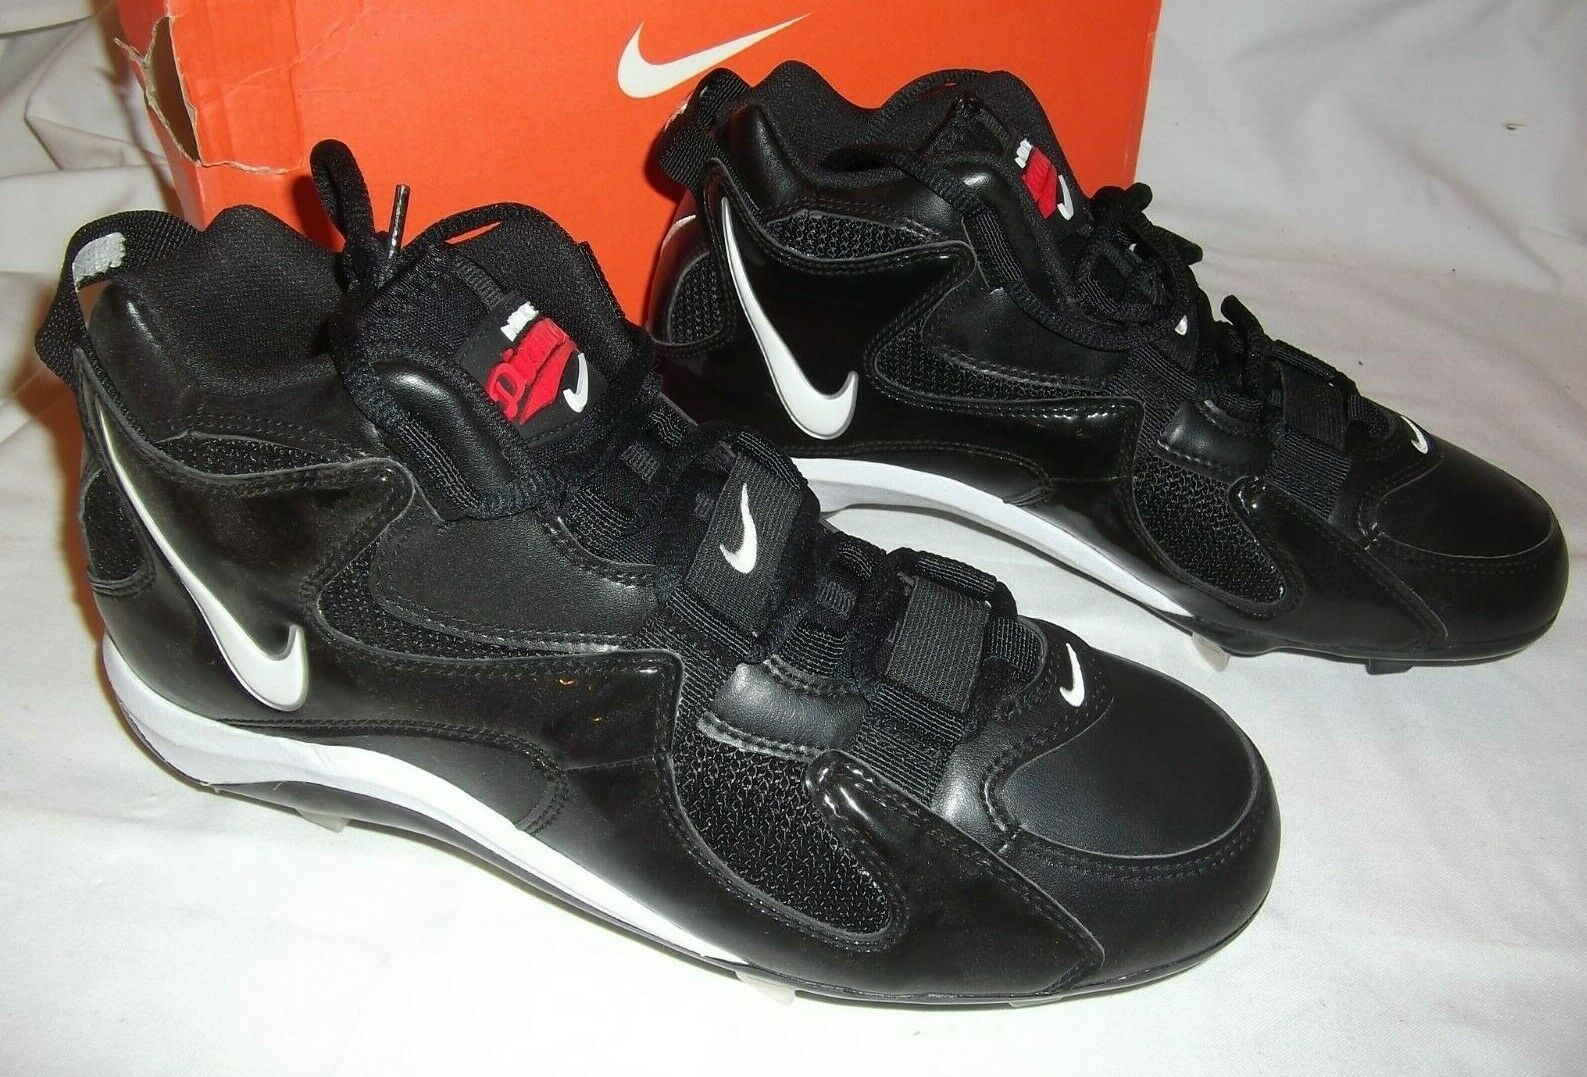 NIKE '95 DIAMOND FURY RETRO MENS BASEBALL SOFTBALL CLEATS NEW SIZE 9